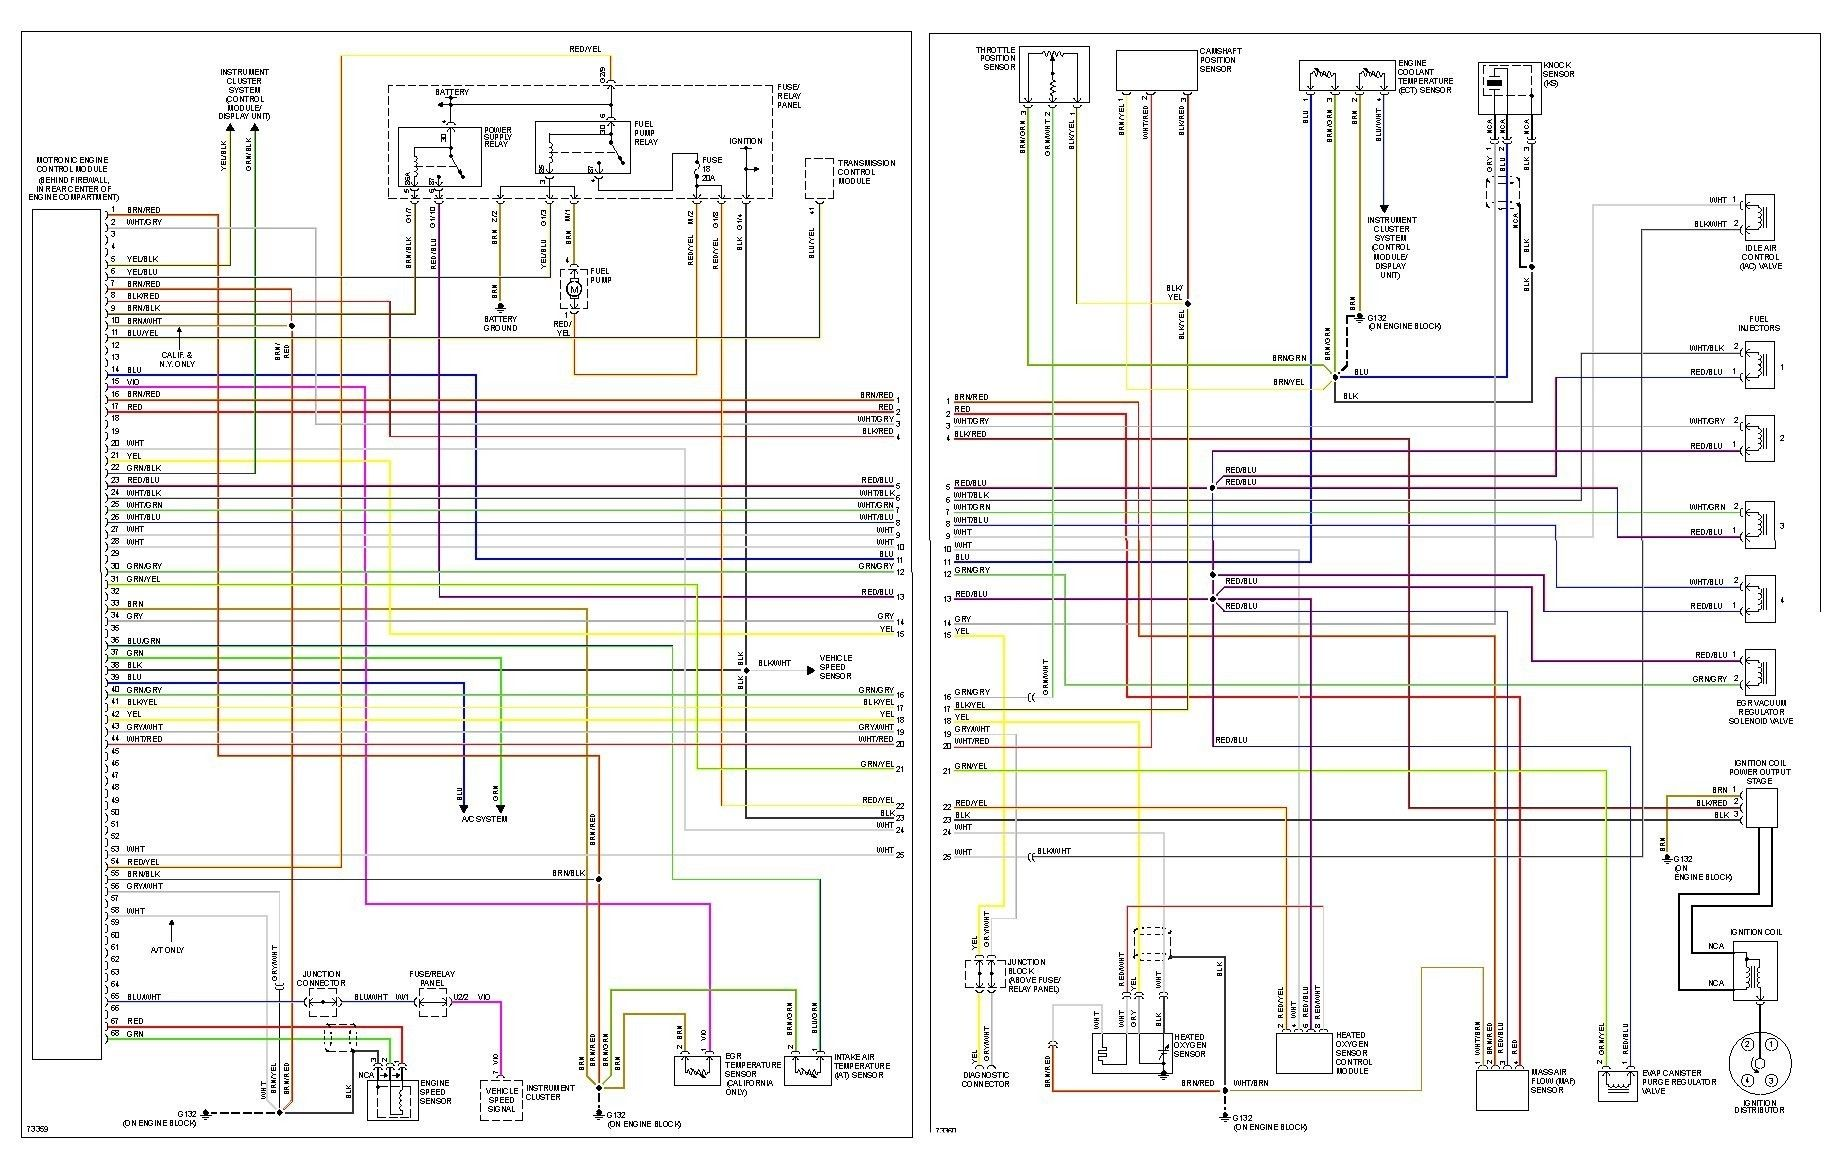 new golf 4 1.9 tdi wiring diagram #diagram #diagramsample #diagramtemplate  #wiringdiagram #diagramchart #worksheet #worksheettemplate | vw up, vr6  engine, tdi  pinterest